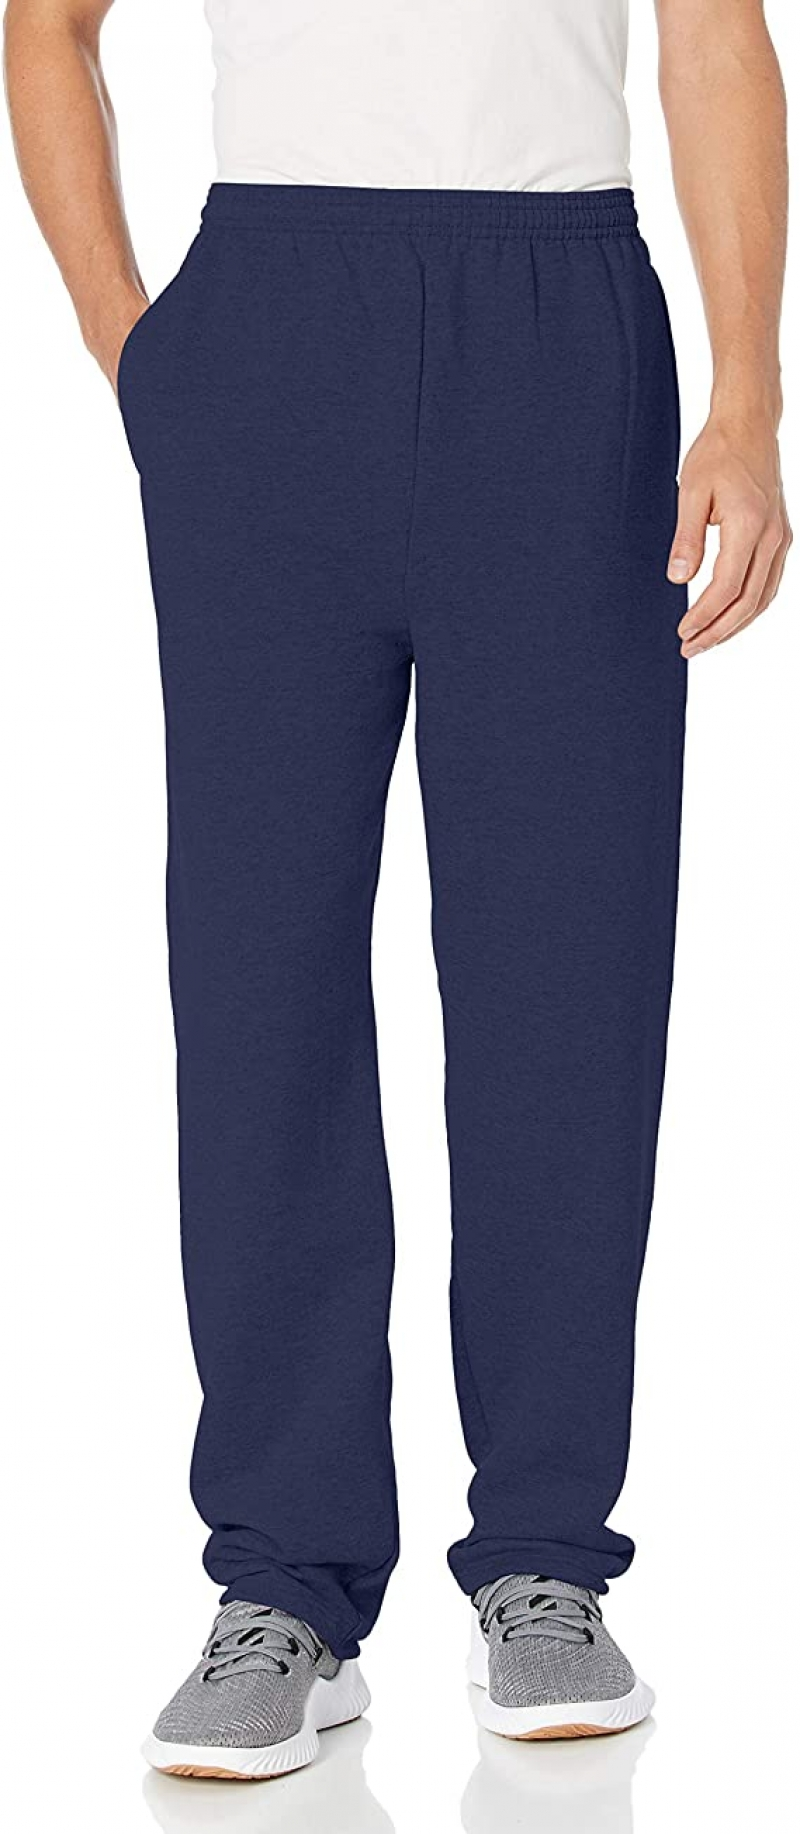 ihocon: Hanes Men's EcoSmart Open Leg Fleece Pant with Pockets 男士長褲